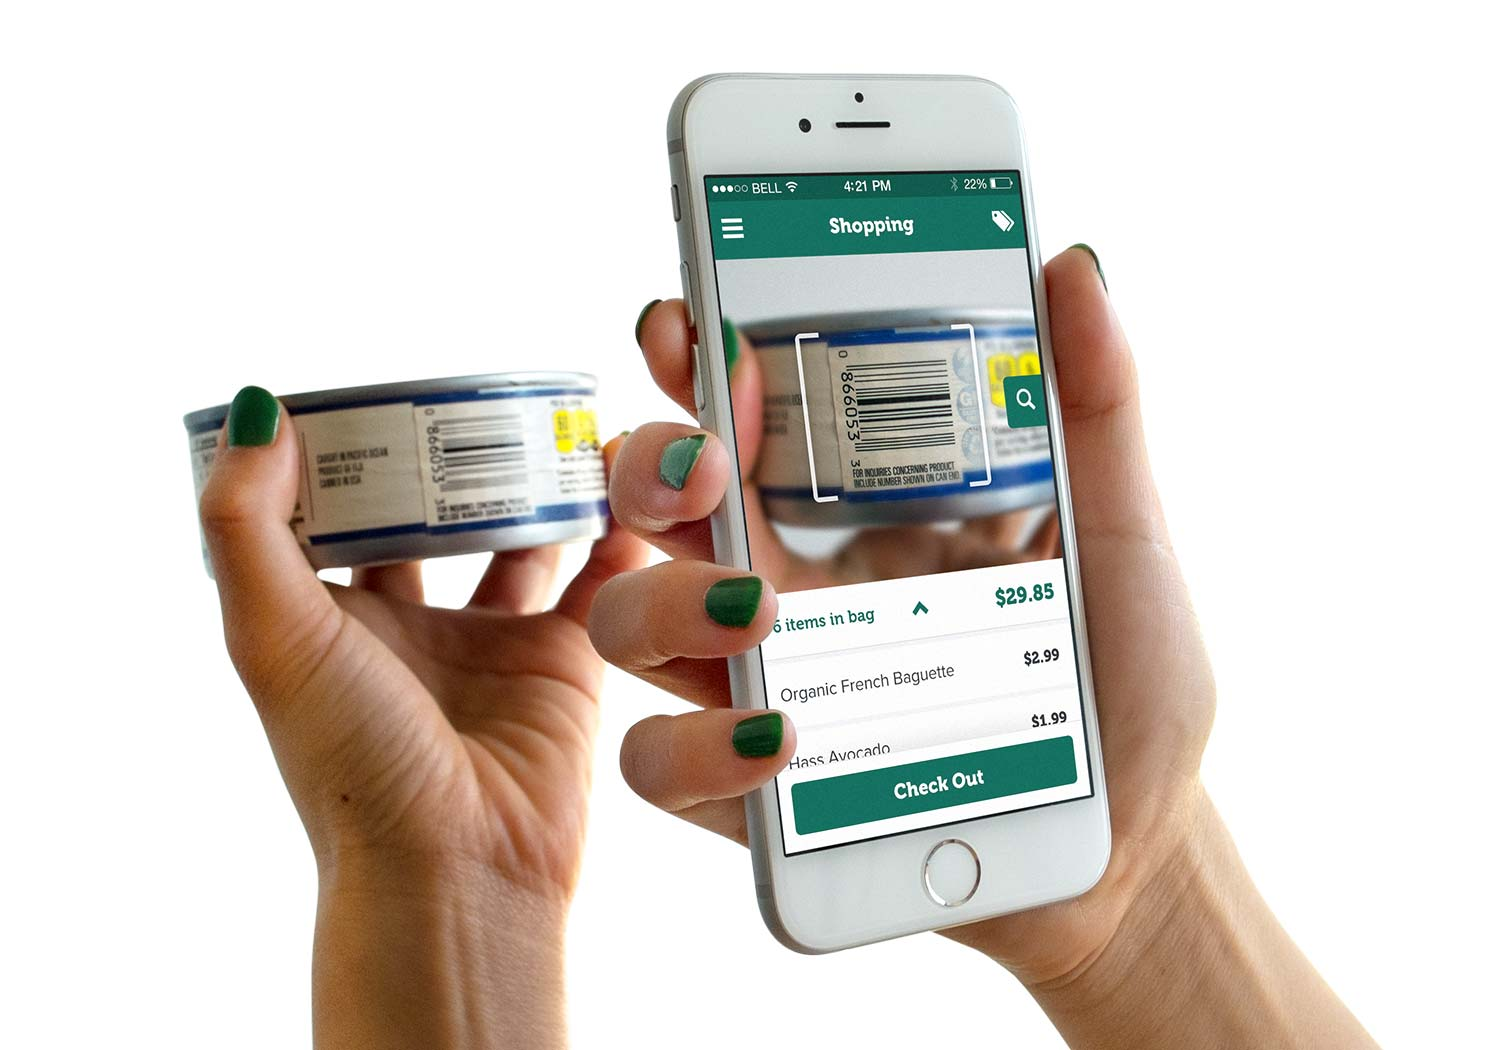 FutureProof Retail and Associated Wholesale Grocers (AWG) Partner to Provide Mobile Self-Scanning and Checkout Solutions to Independent Supermarkets